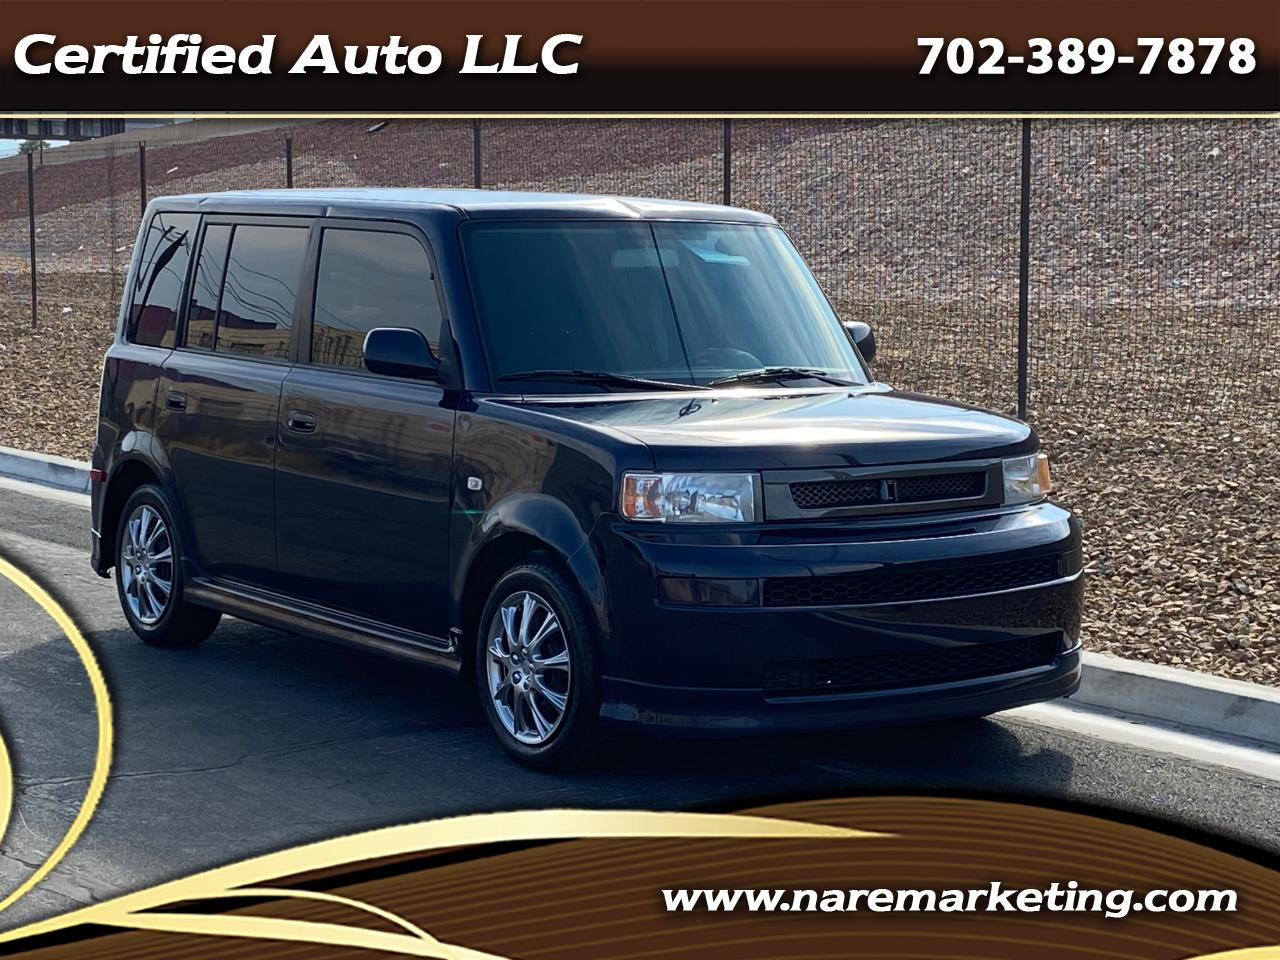 Scion xB 5dr Wgn Manual (Natl) 2005